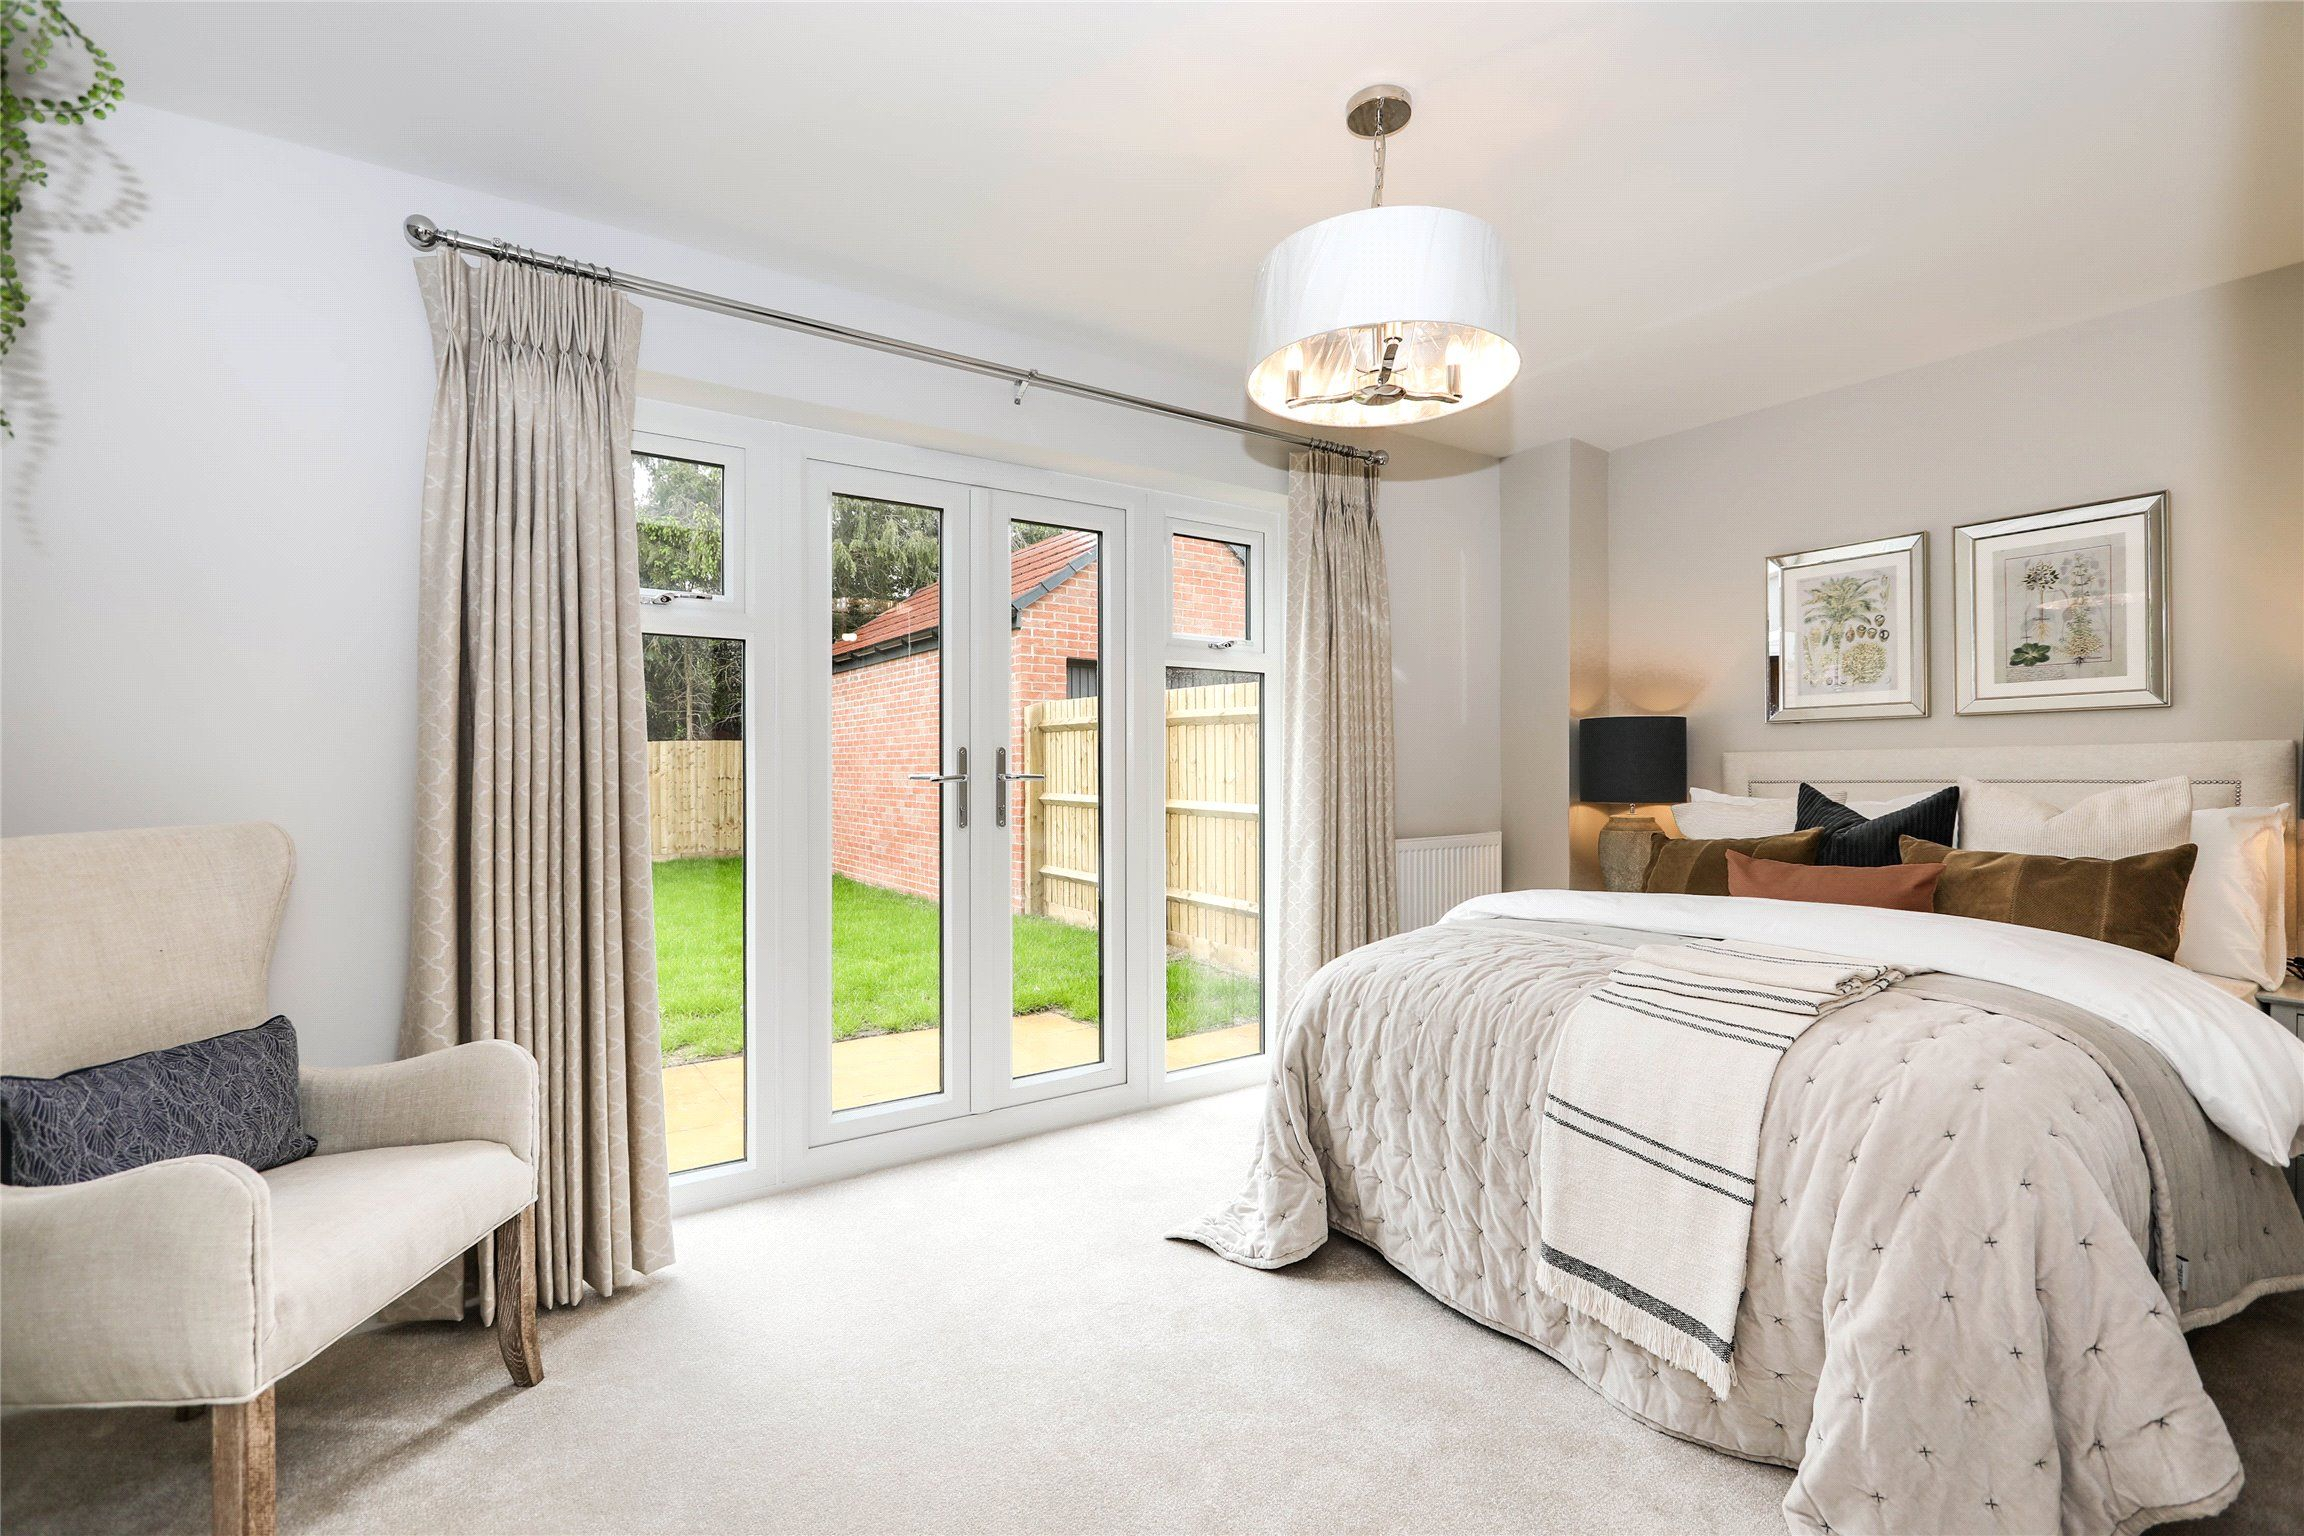 Property photo 1 of 12. Showhome Image